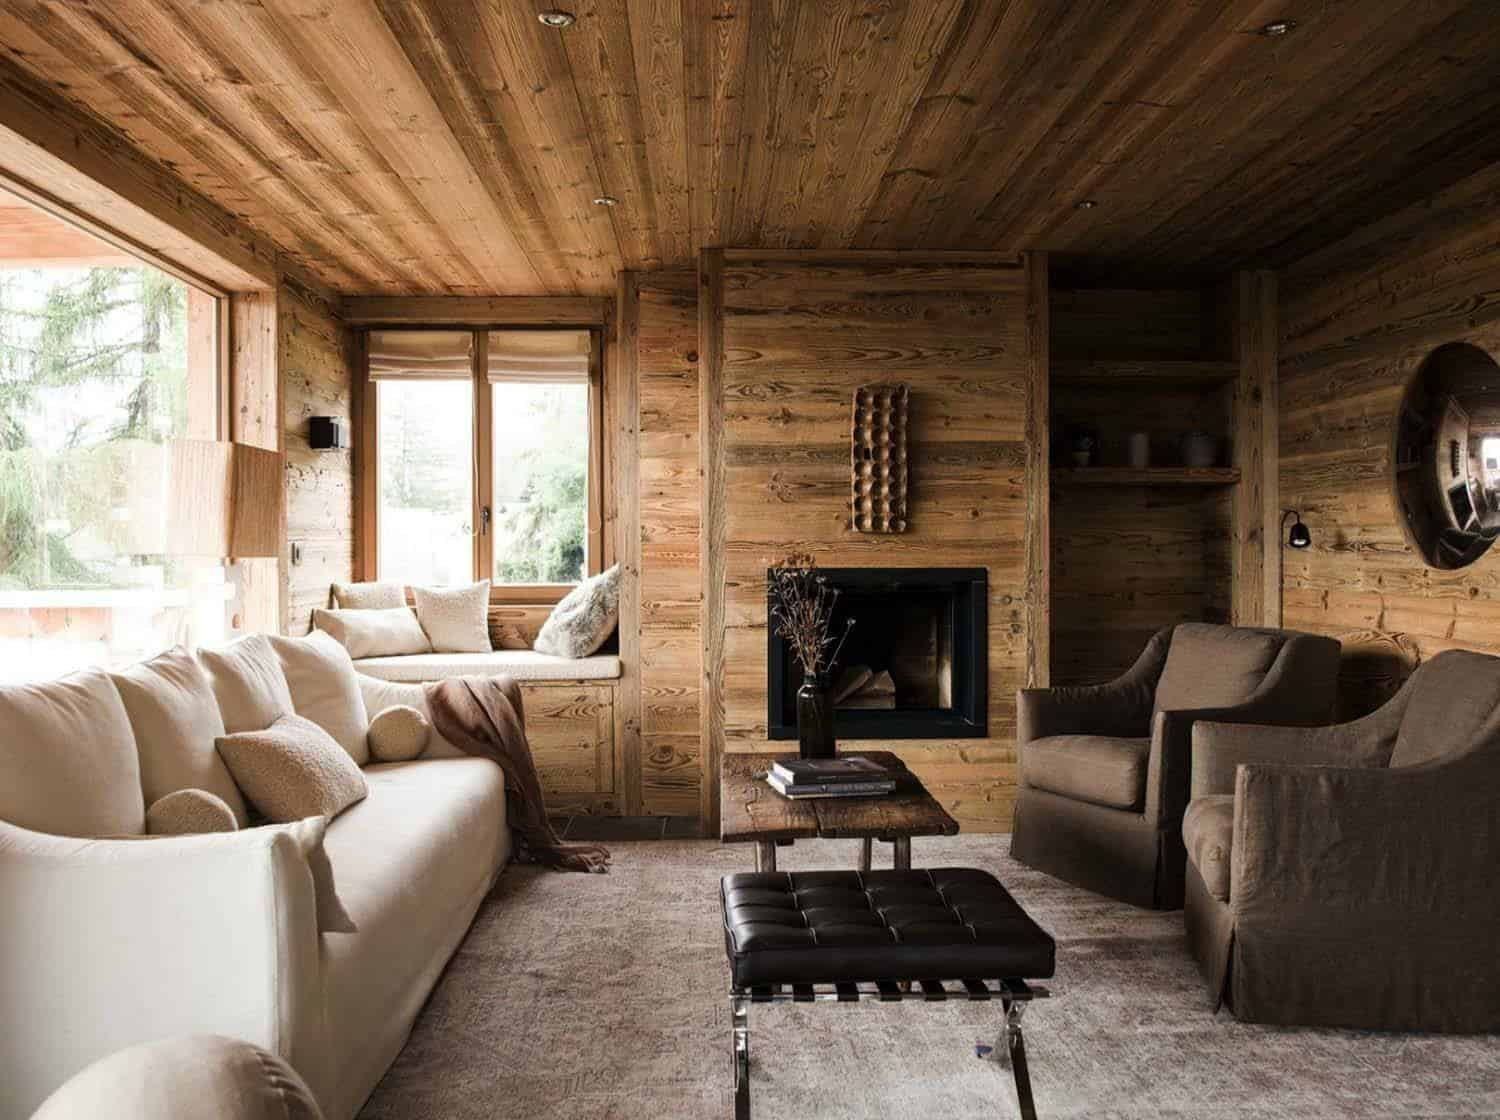 Rustic mountain chalet in Switzerland provides relaxed interiors